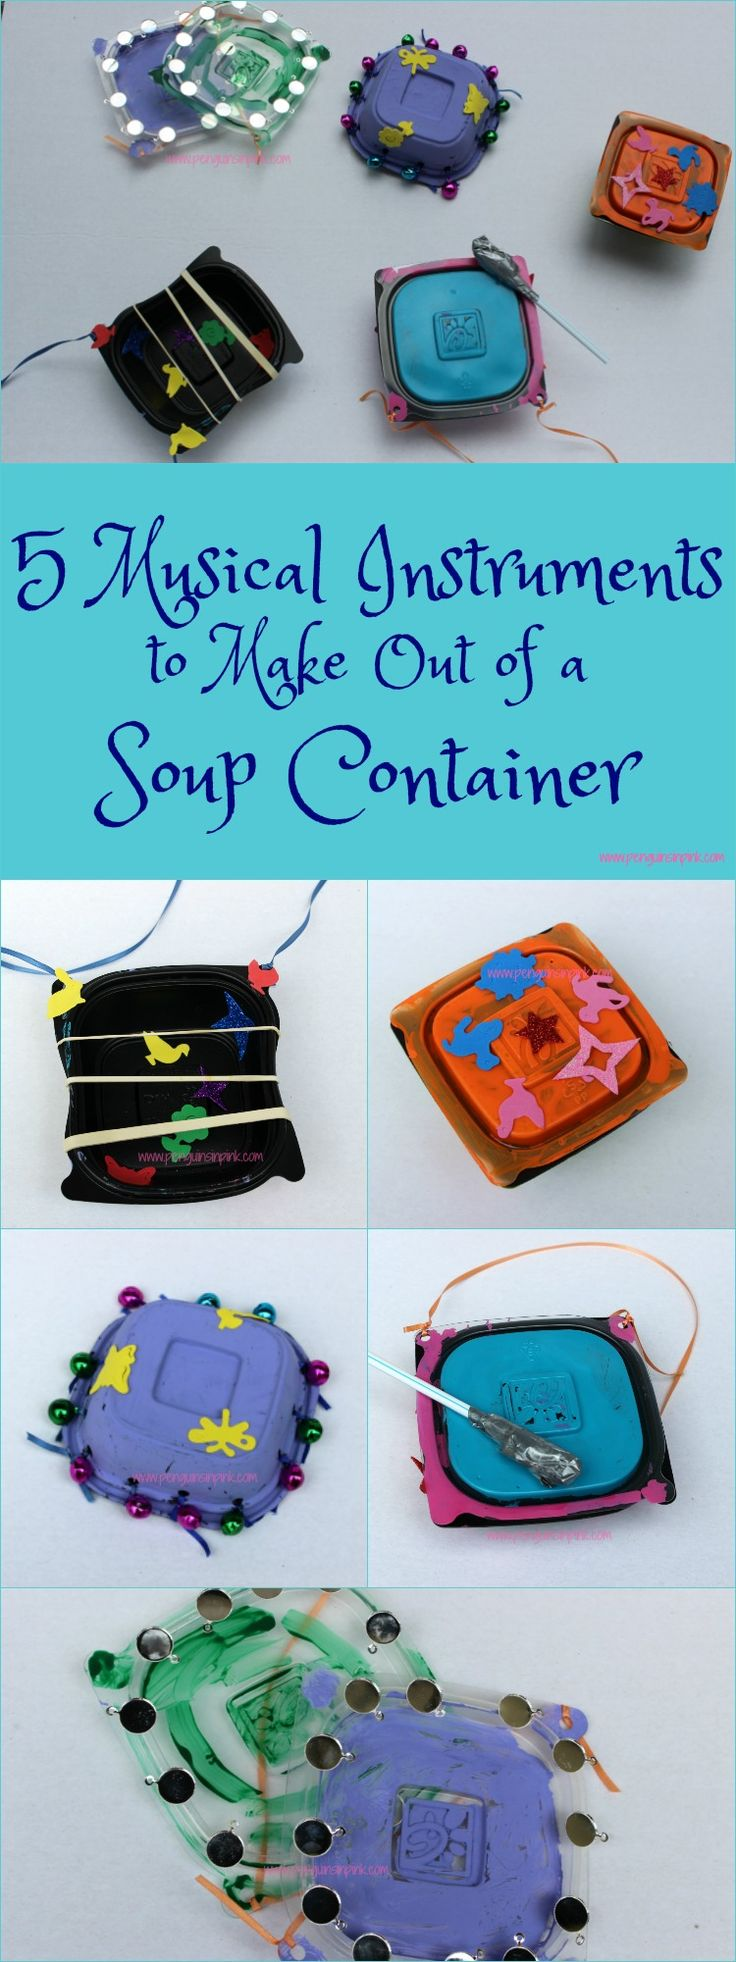 5 Musical Instruments to Make Out of a Soup Container - With a few household staples your kids can transform a Chick-fil-A soup container into one of five fun musical instruments. #ChickfilAMomsDIY